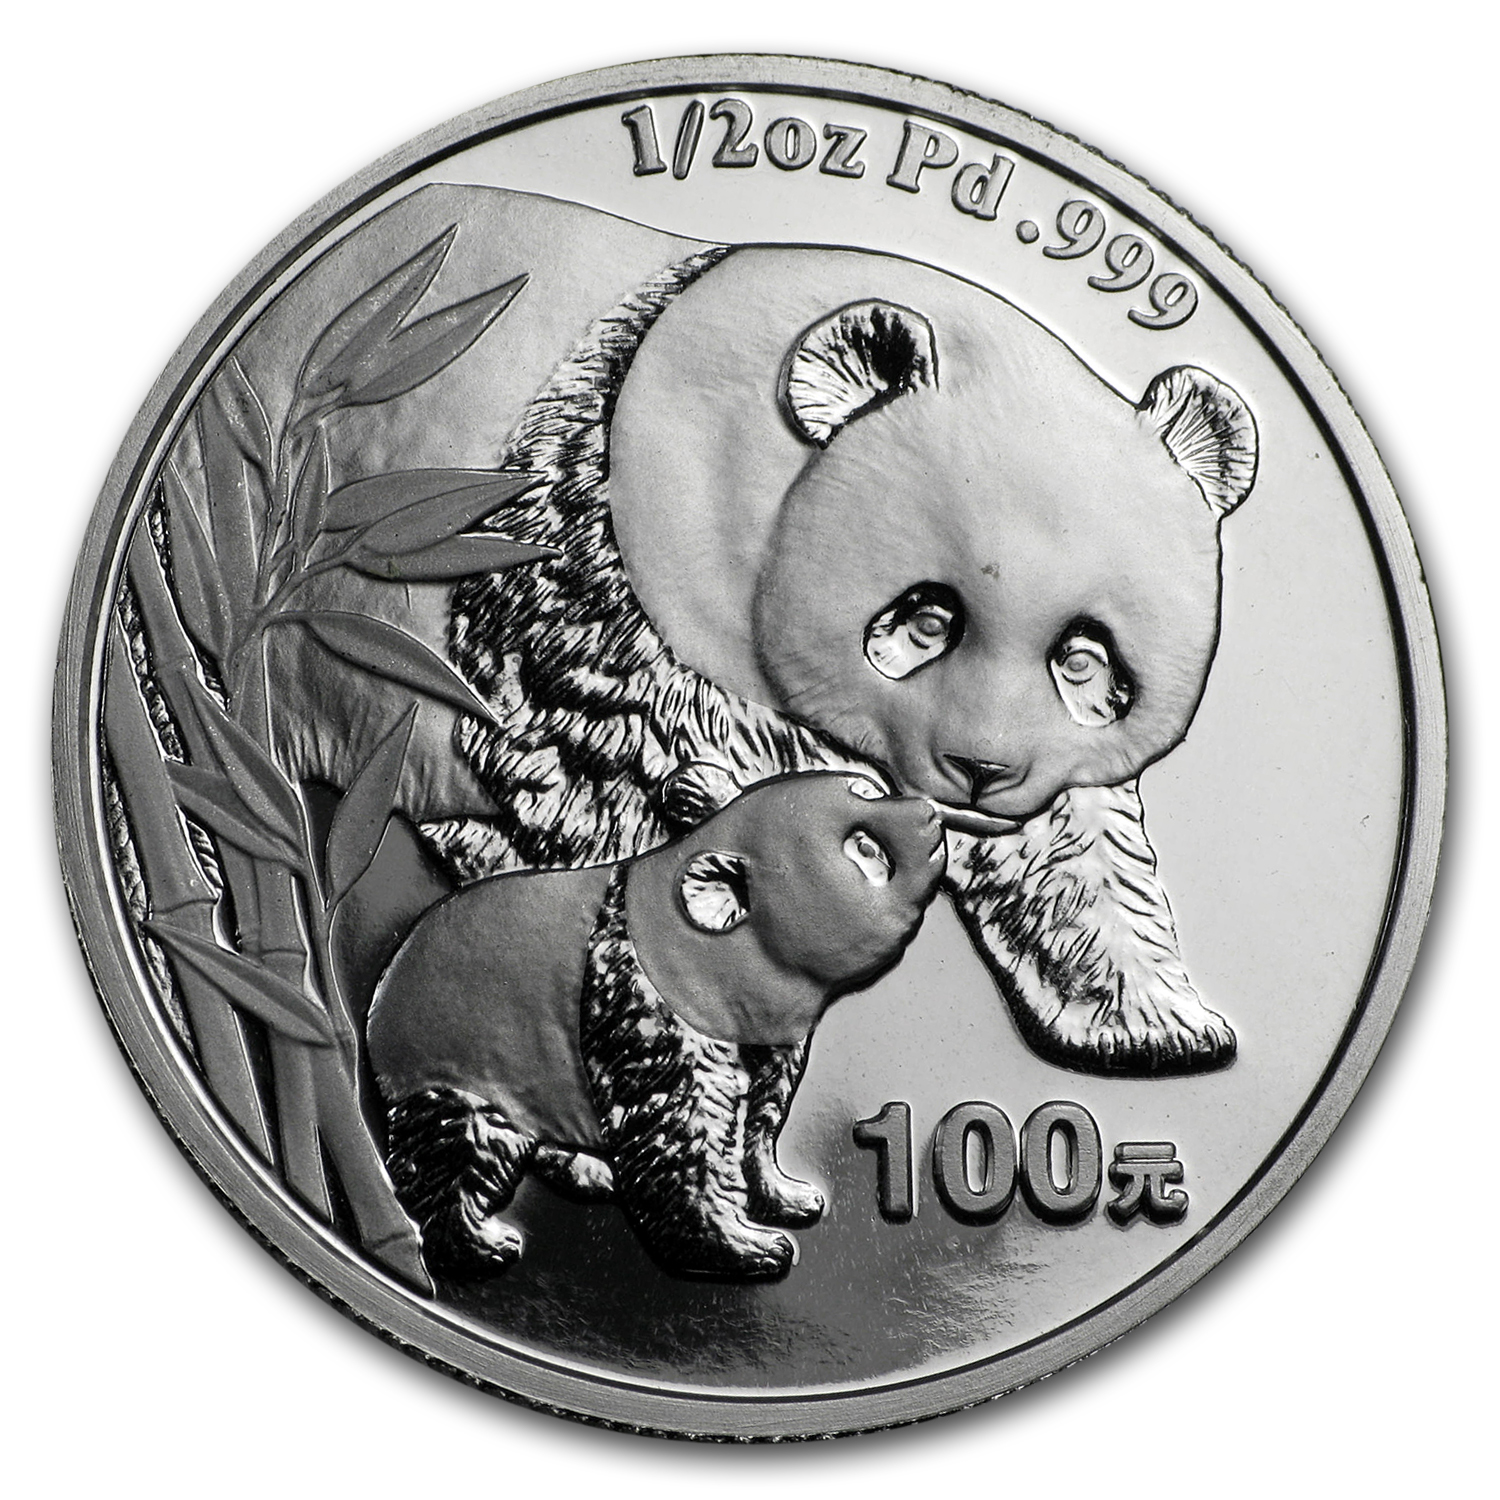 2004 1/2 oz Palladium Chinese Panda Proof (w/Box & COA)